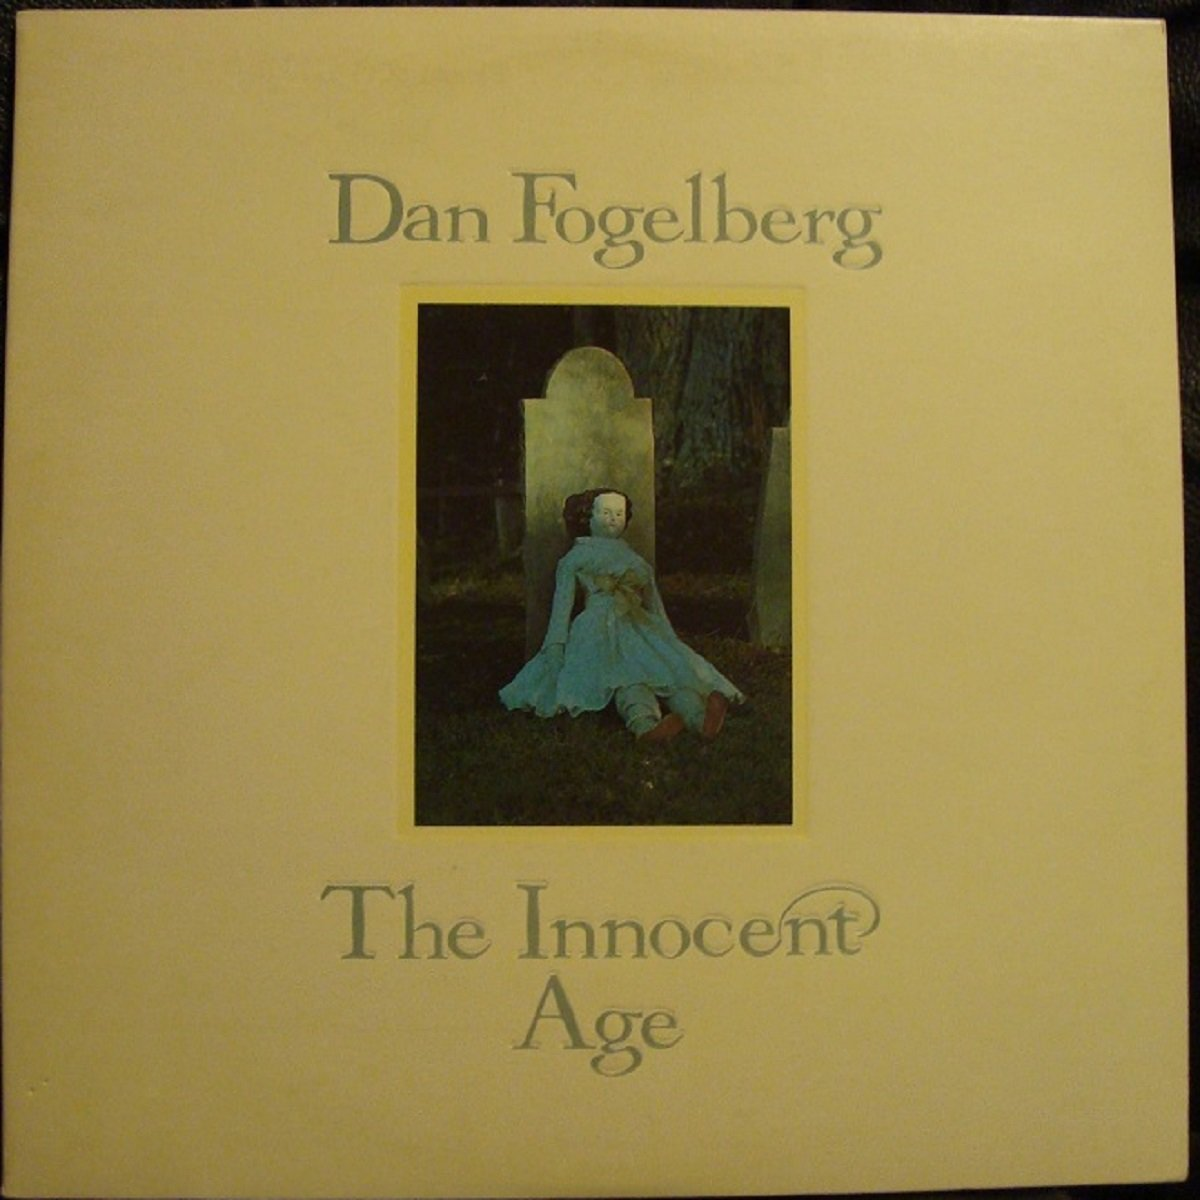 The Innocent Age by Epic Records